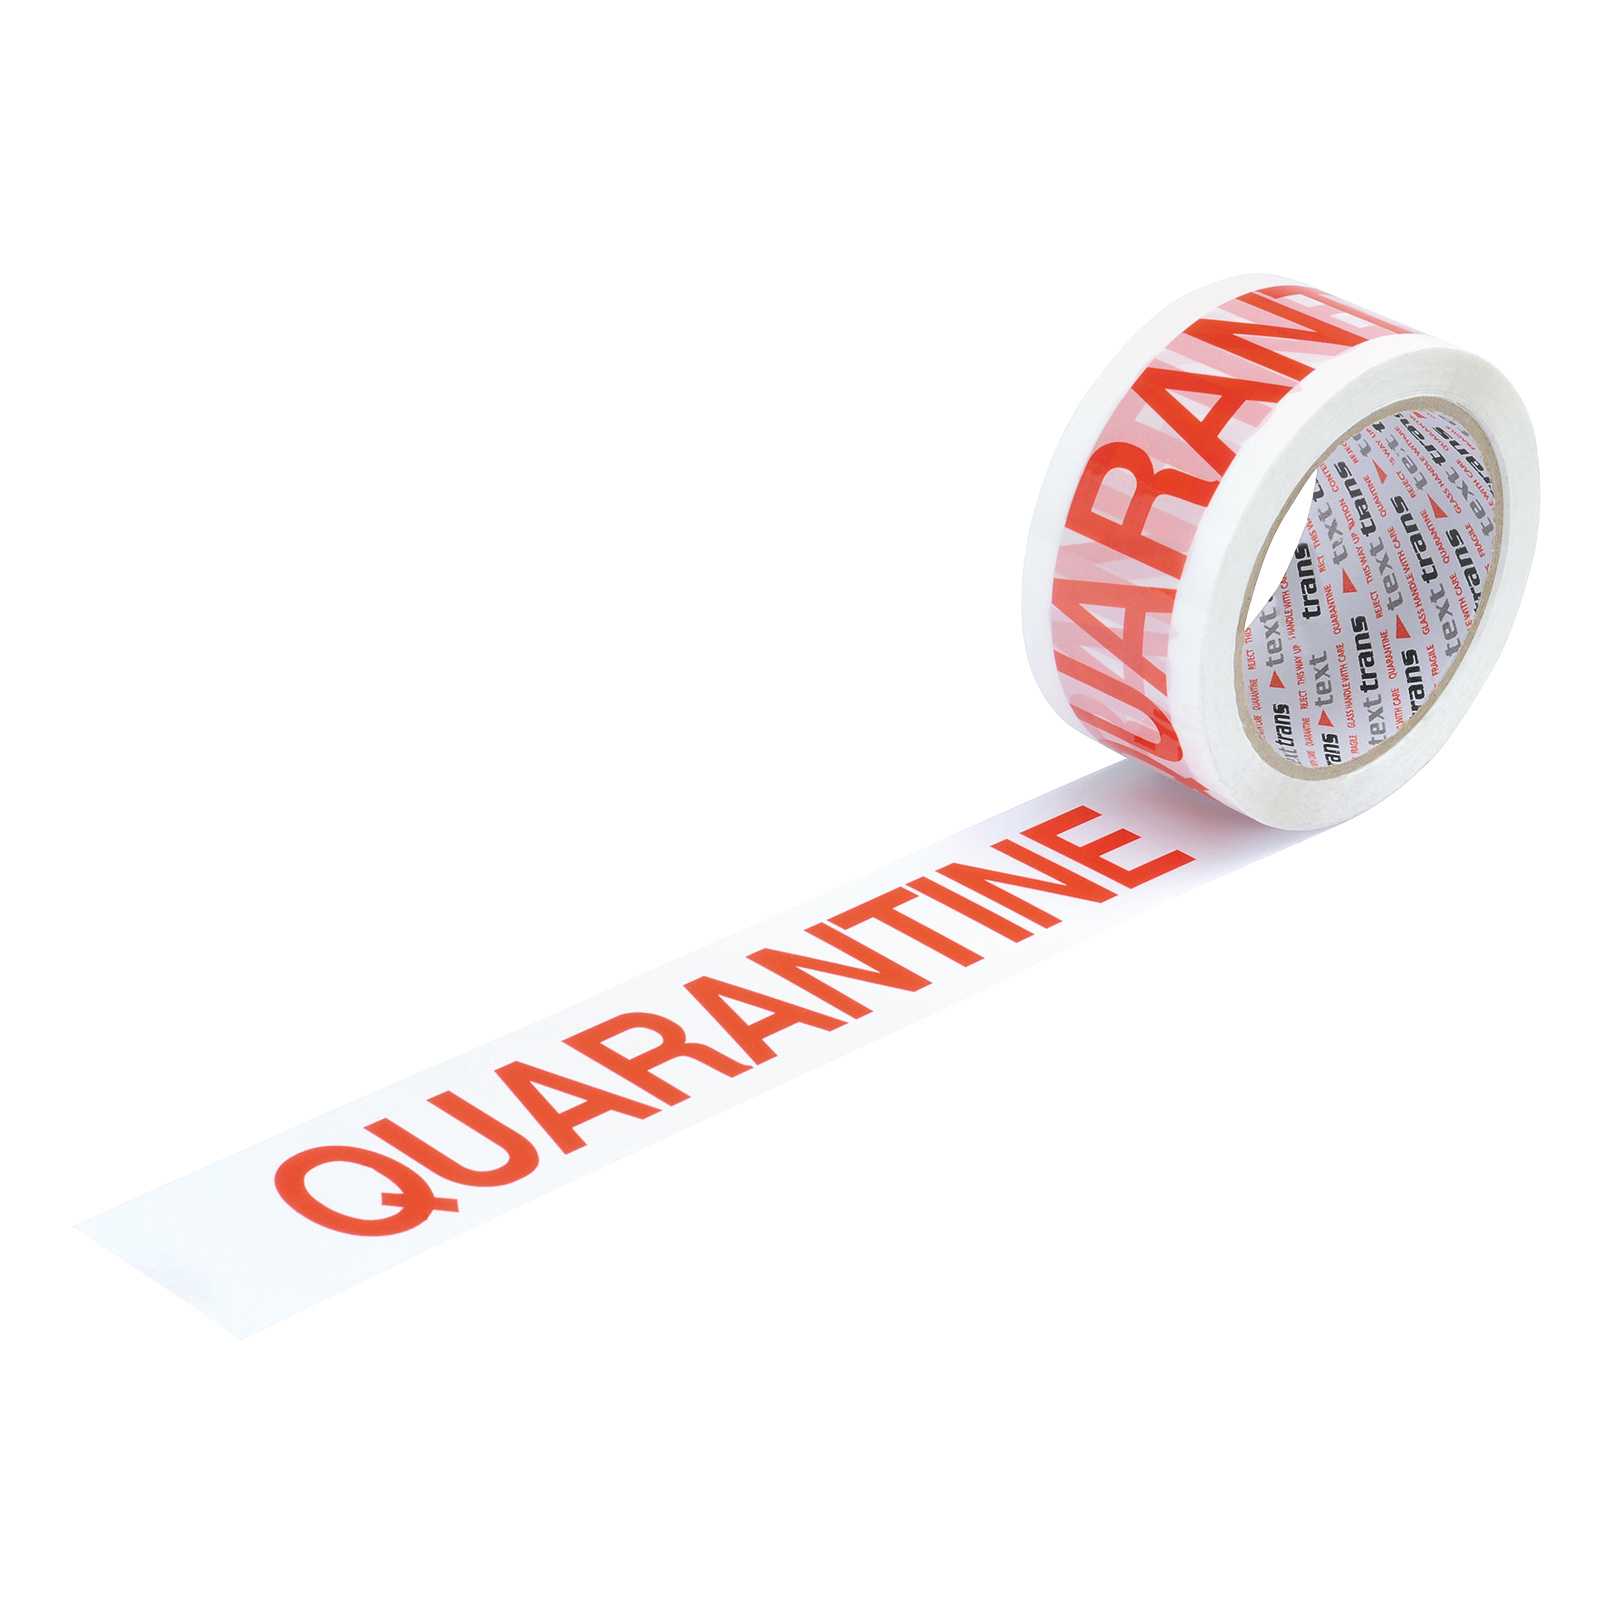 5 Star Office Printed Tape Quarantine Polypropylene 48mmx66m Red Text on White Pack 6